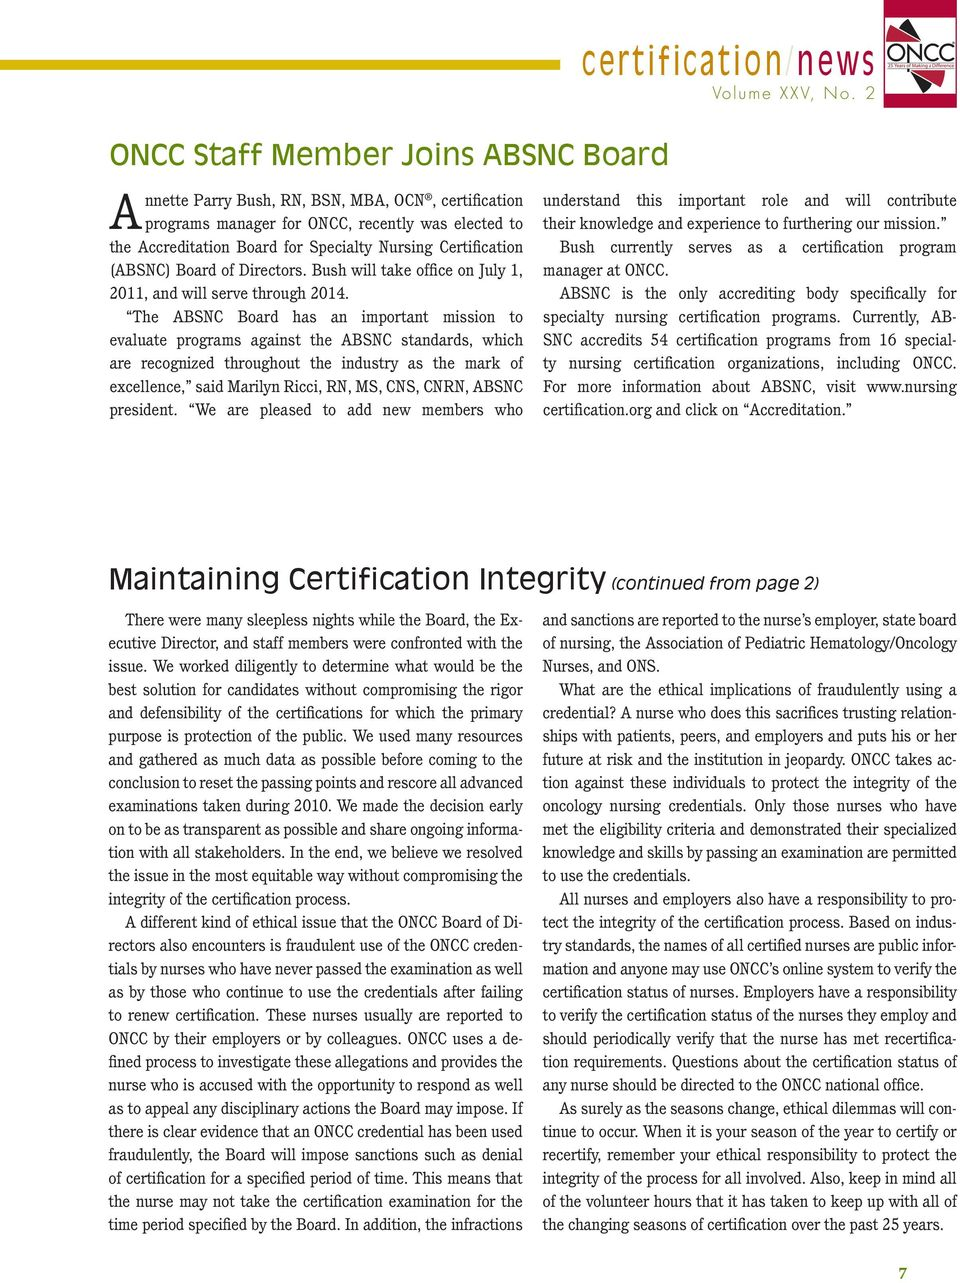 Certificationnews The Newsletter Of The Oncology Nursing